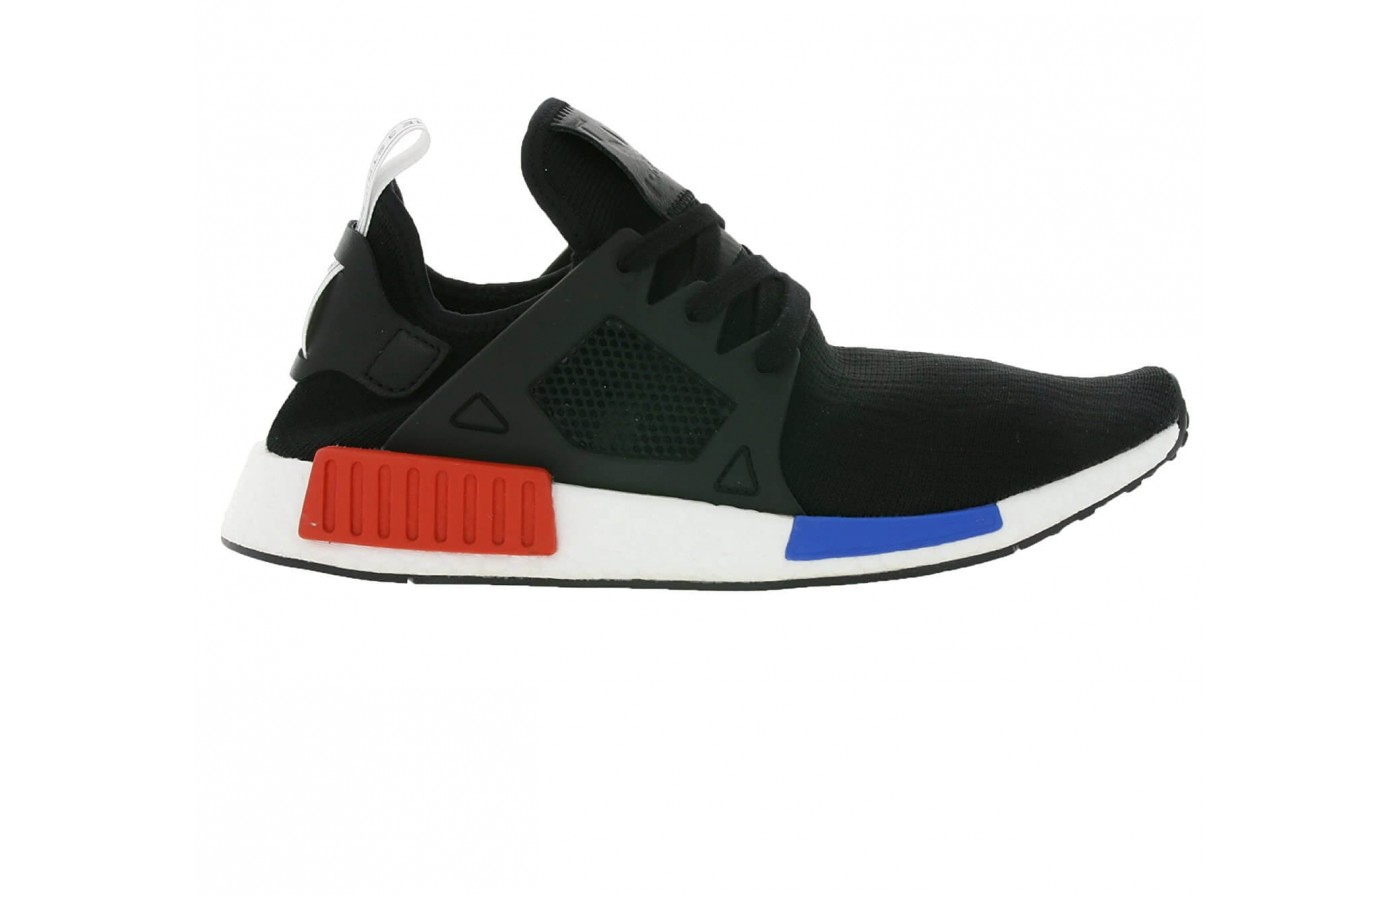 e0be50924 ... A midfoot cage provides some extra stability for the Adidas NMD XR1.